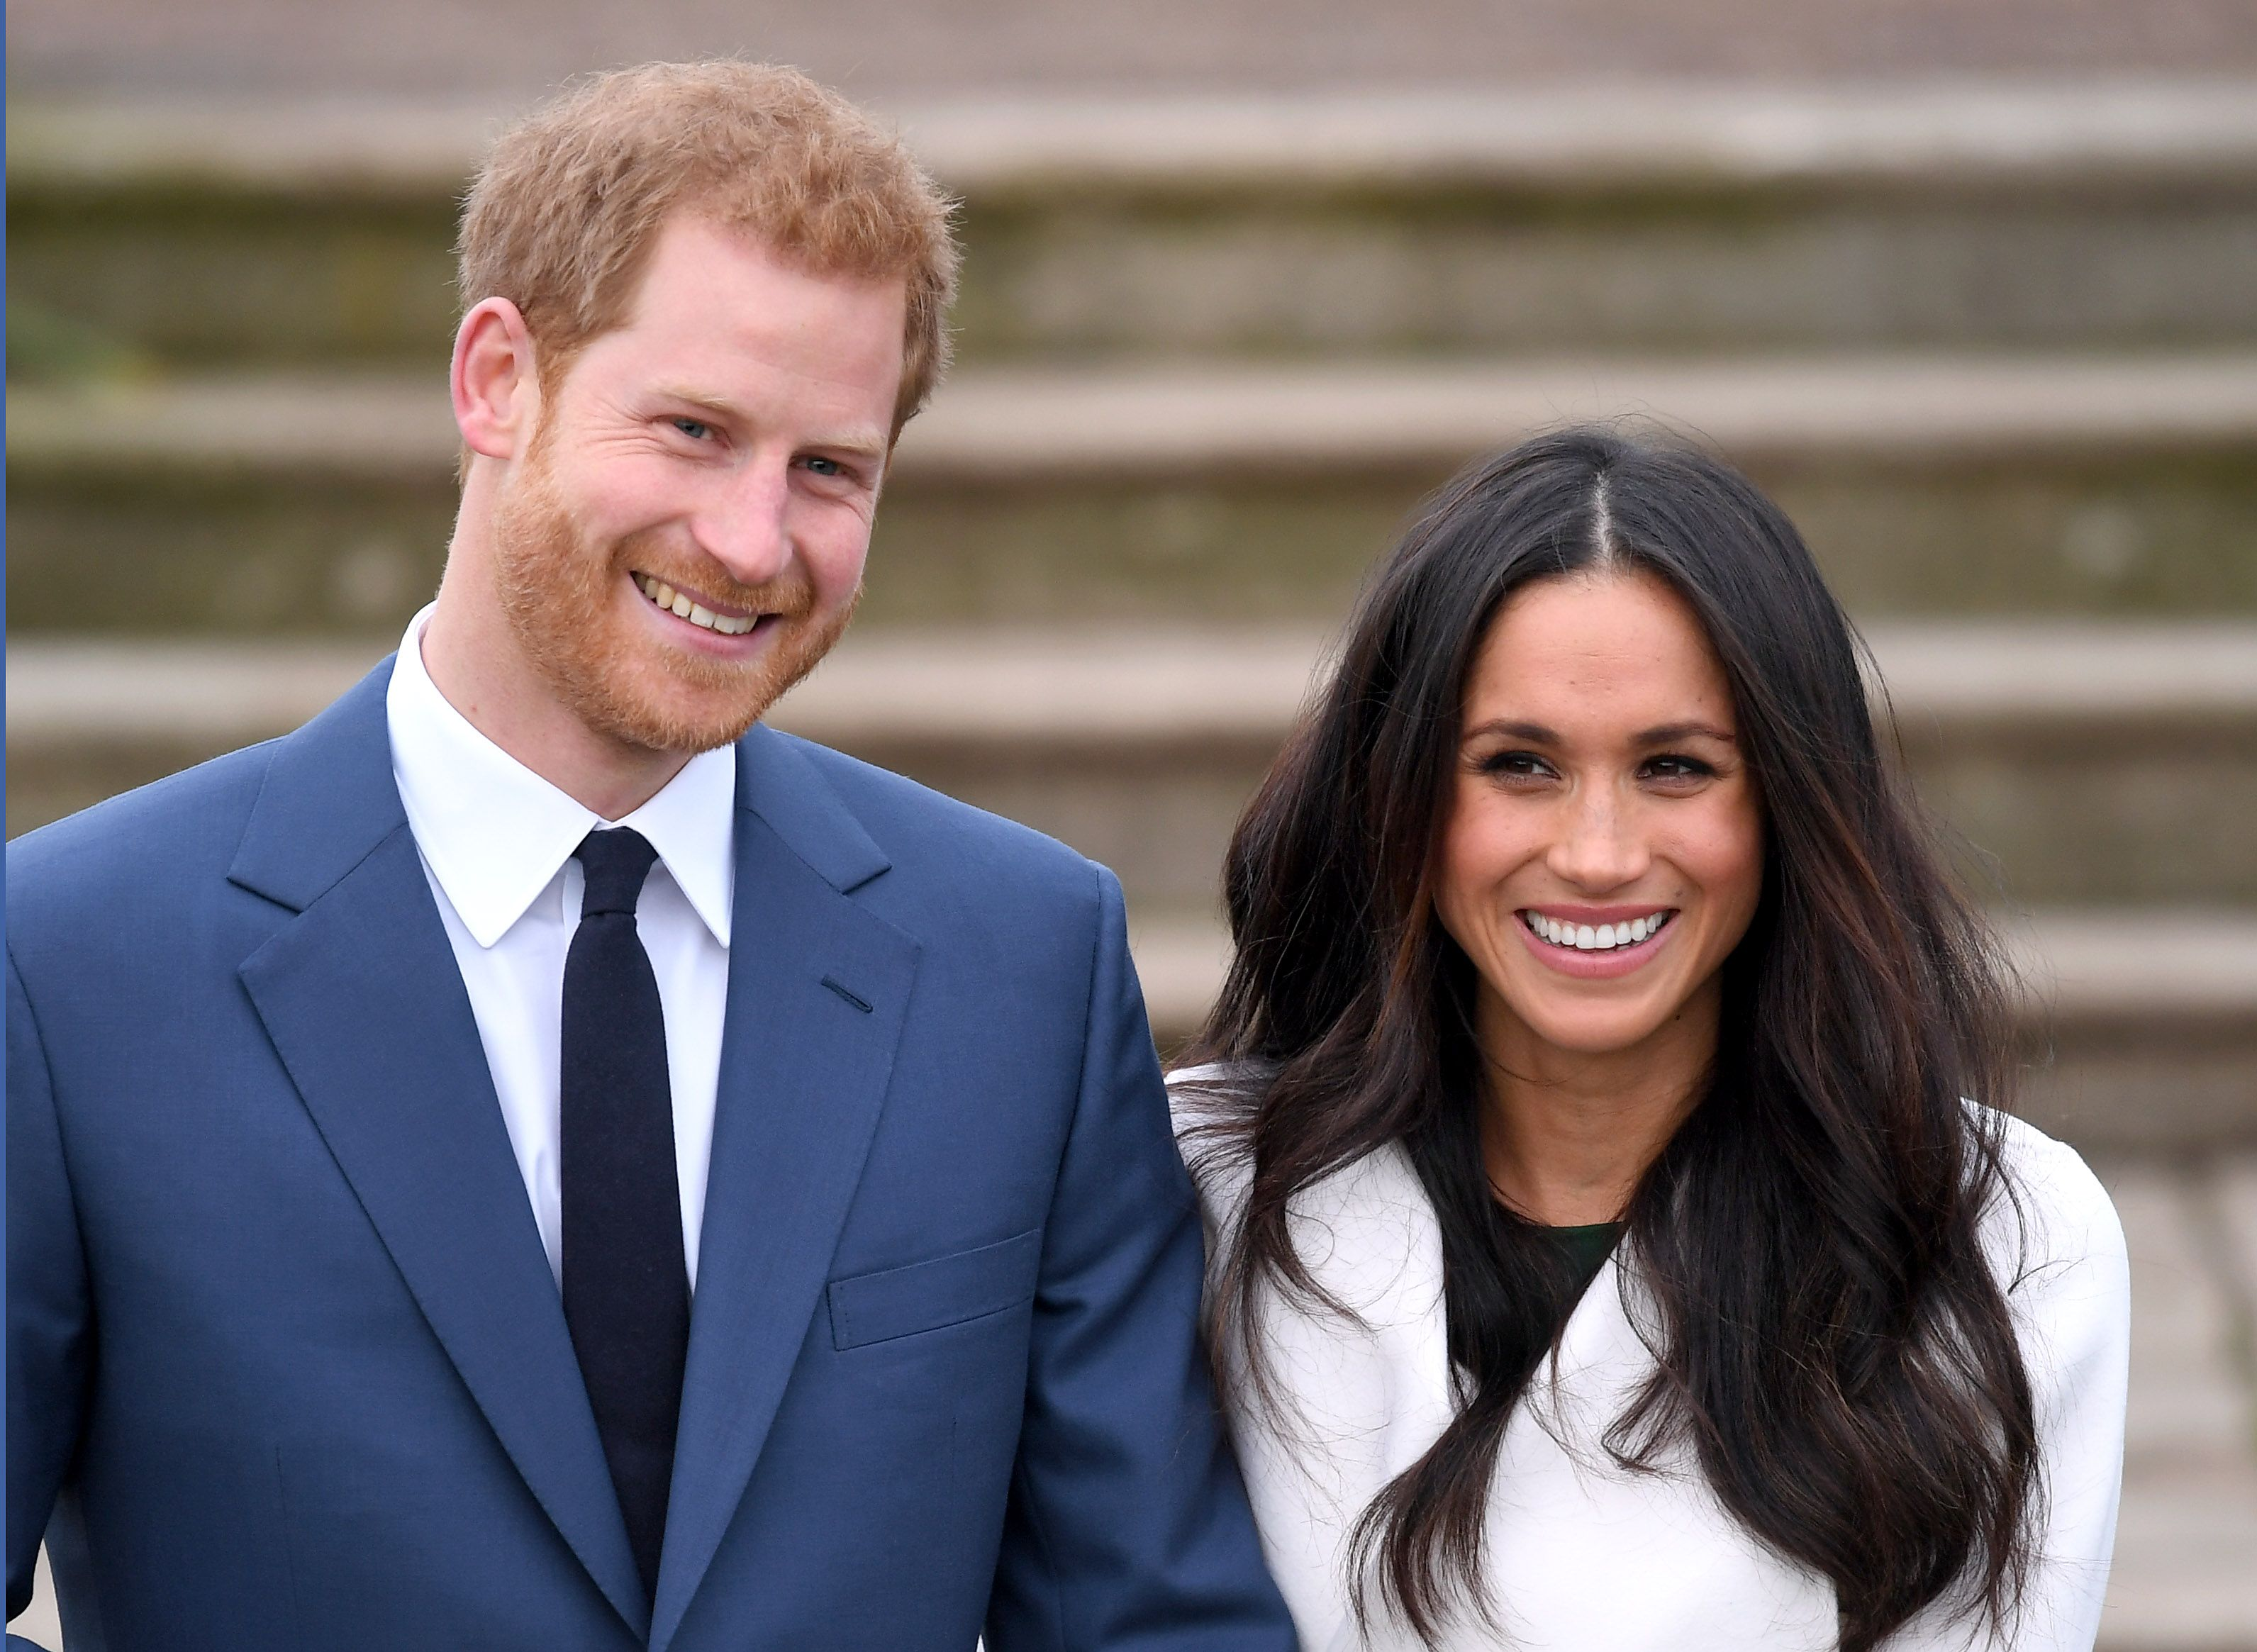 picture Meghan Markle's royal training will include preparingfor hostage situations